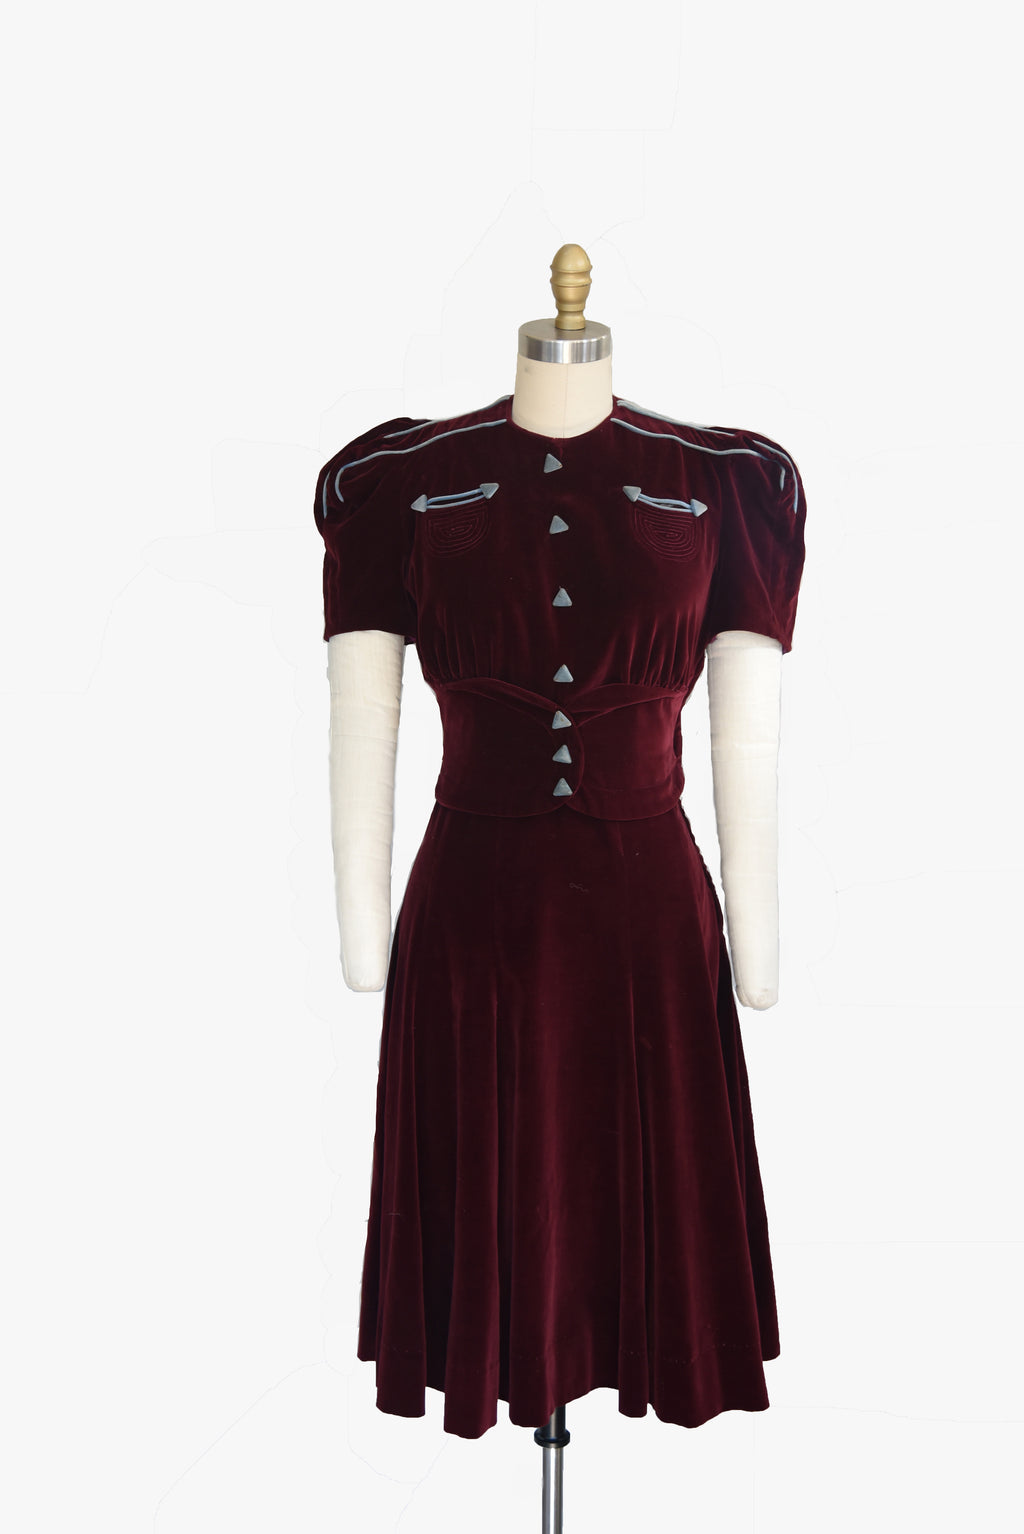 Show Stopping 1930s Velveteen Dress with Arrow Details